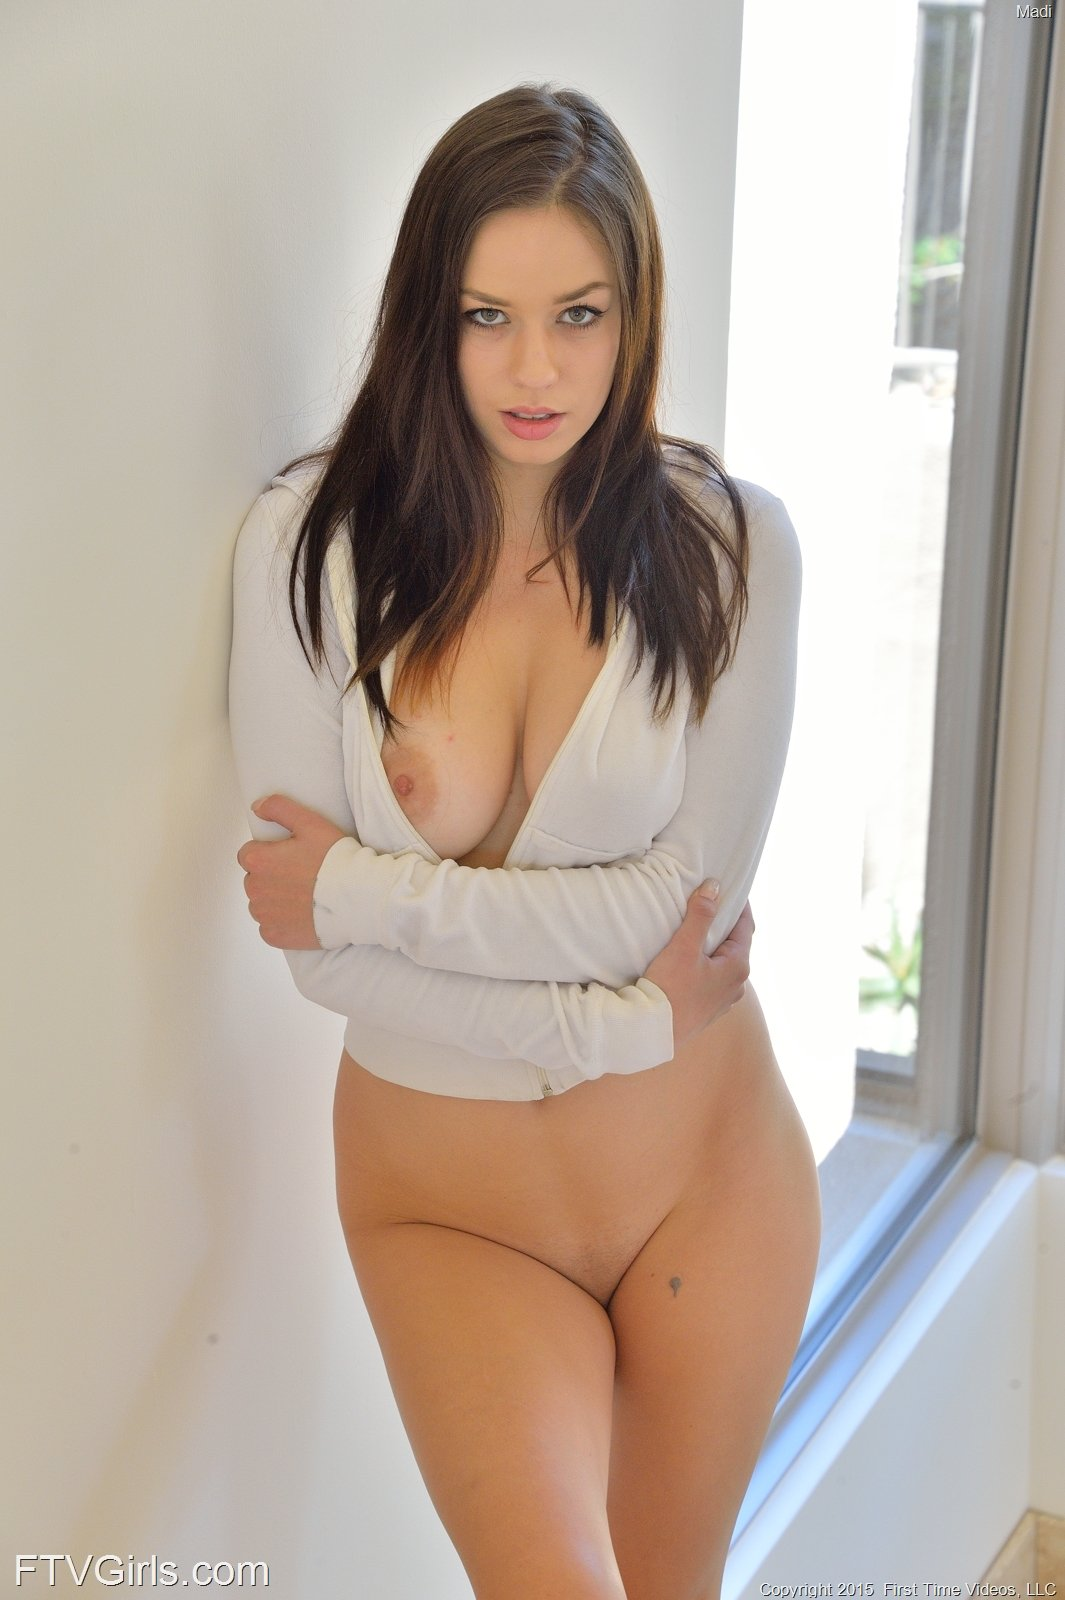 Madi In Under The Hoodie By Ftv Girls 16 Photos  Video -8395